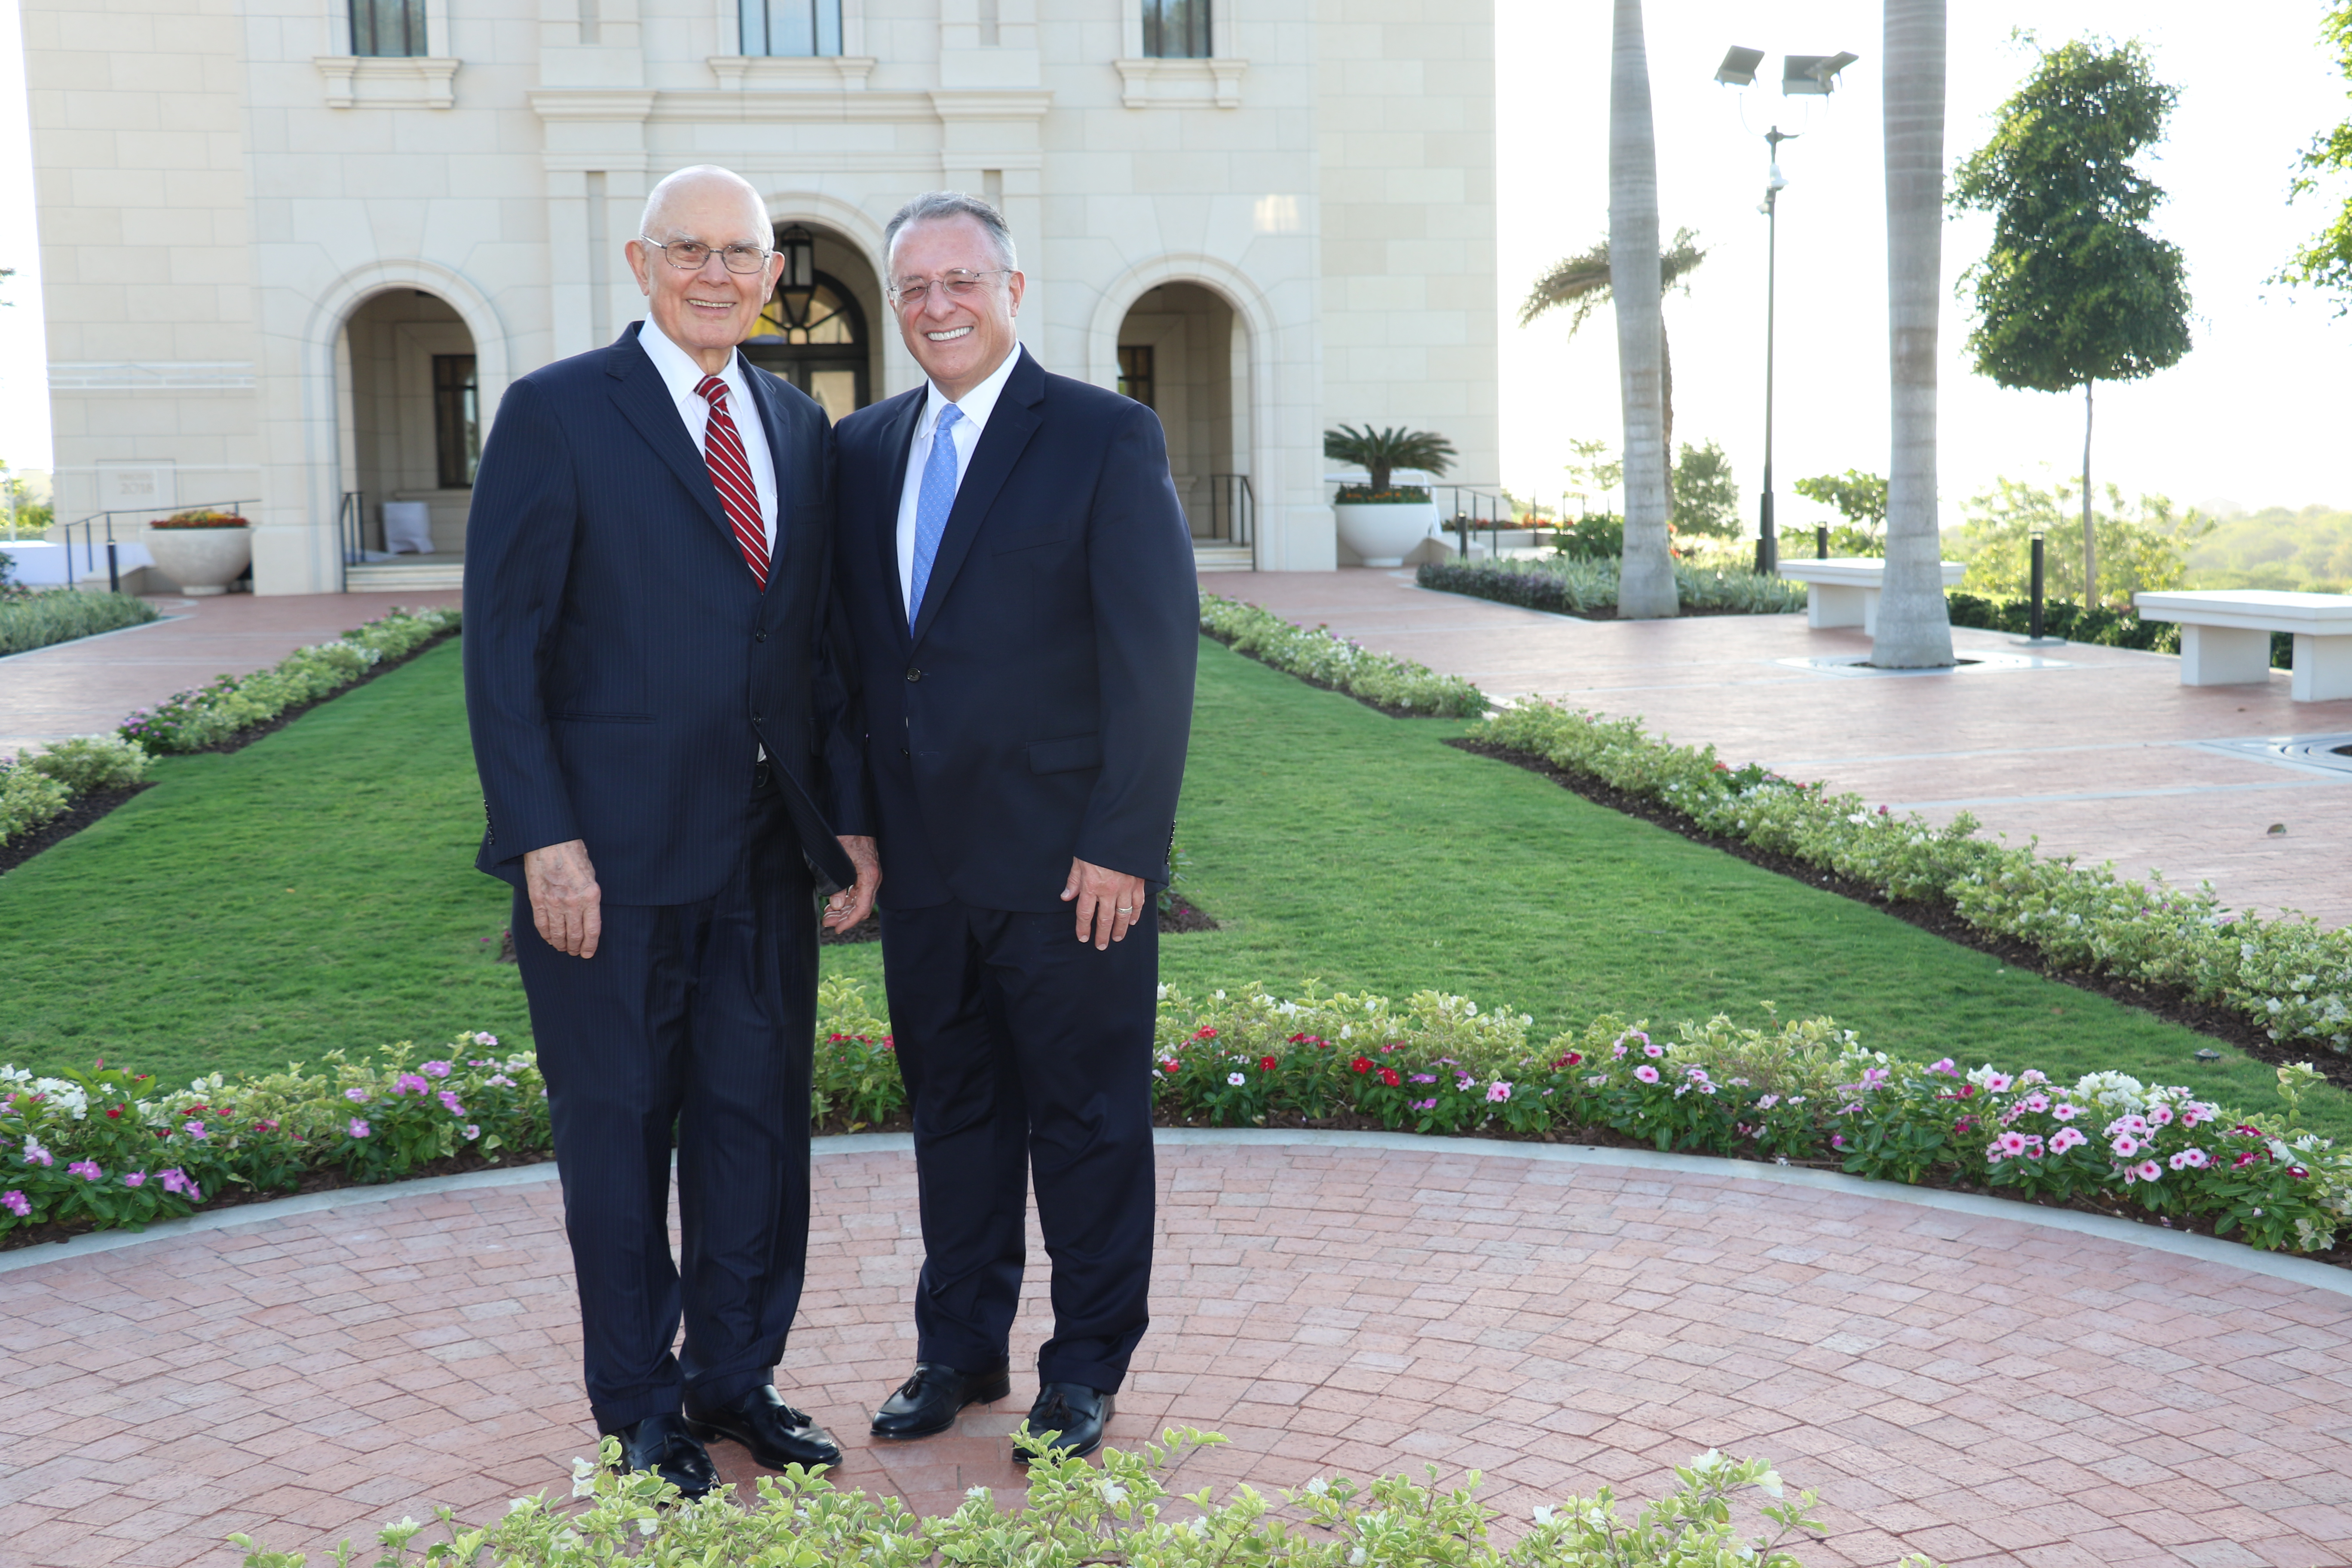 President Dallin H. Oaks of the First Presidency and Elder Ulisses Soares of the Quorum of the Twelve Apostles stand outside the Barranquilla Colombia Temple.